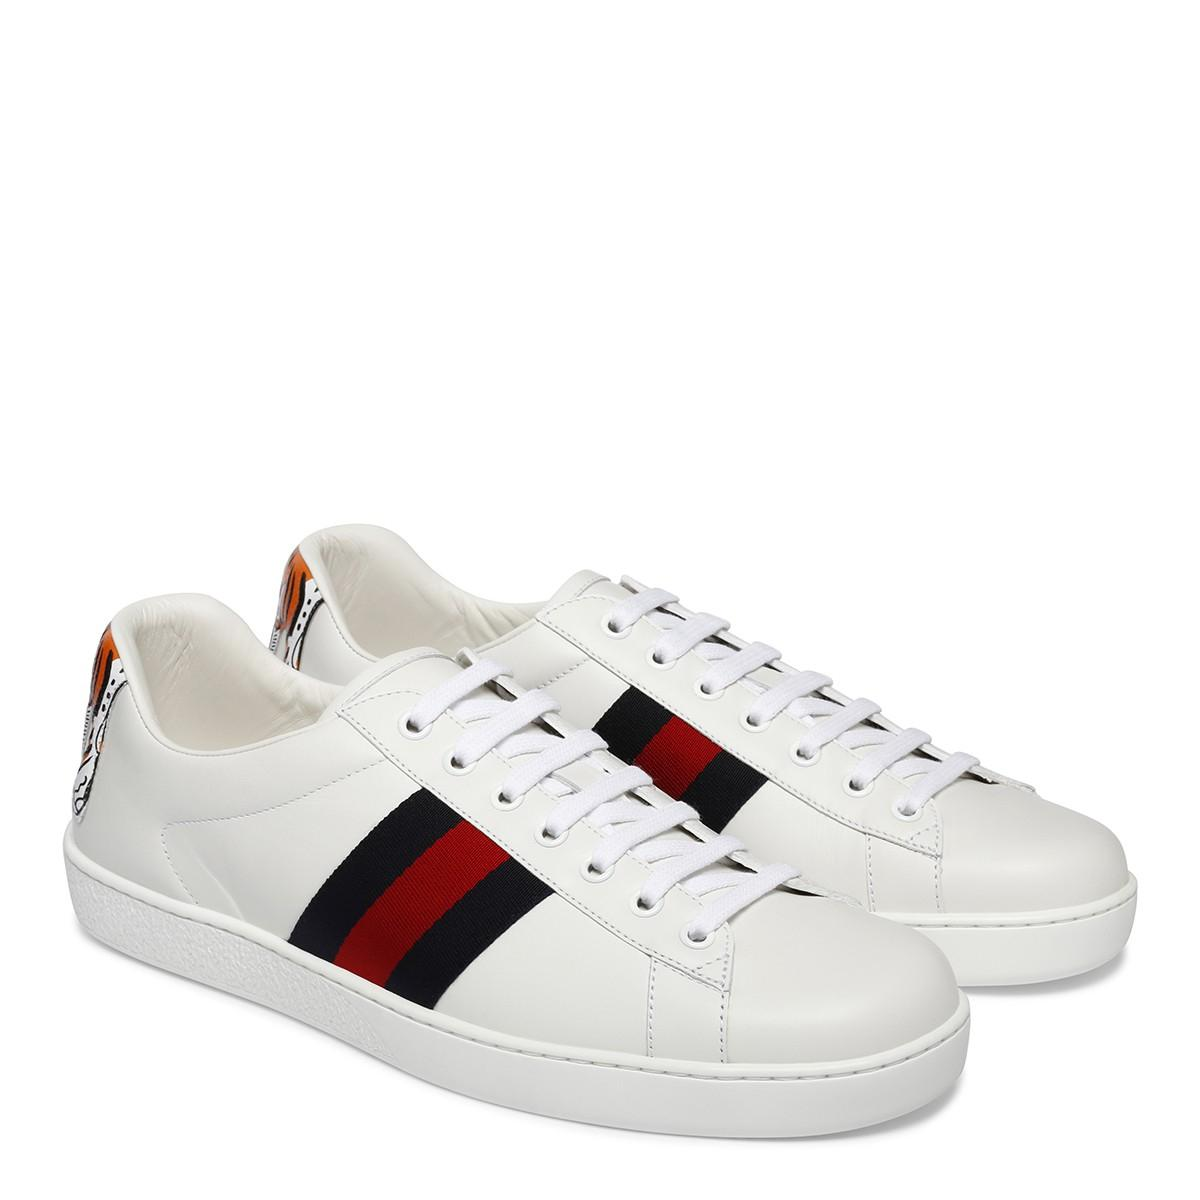 gucci shoes high top white. gucci white athletic shoes high top